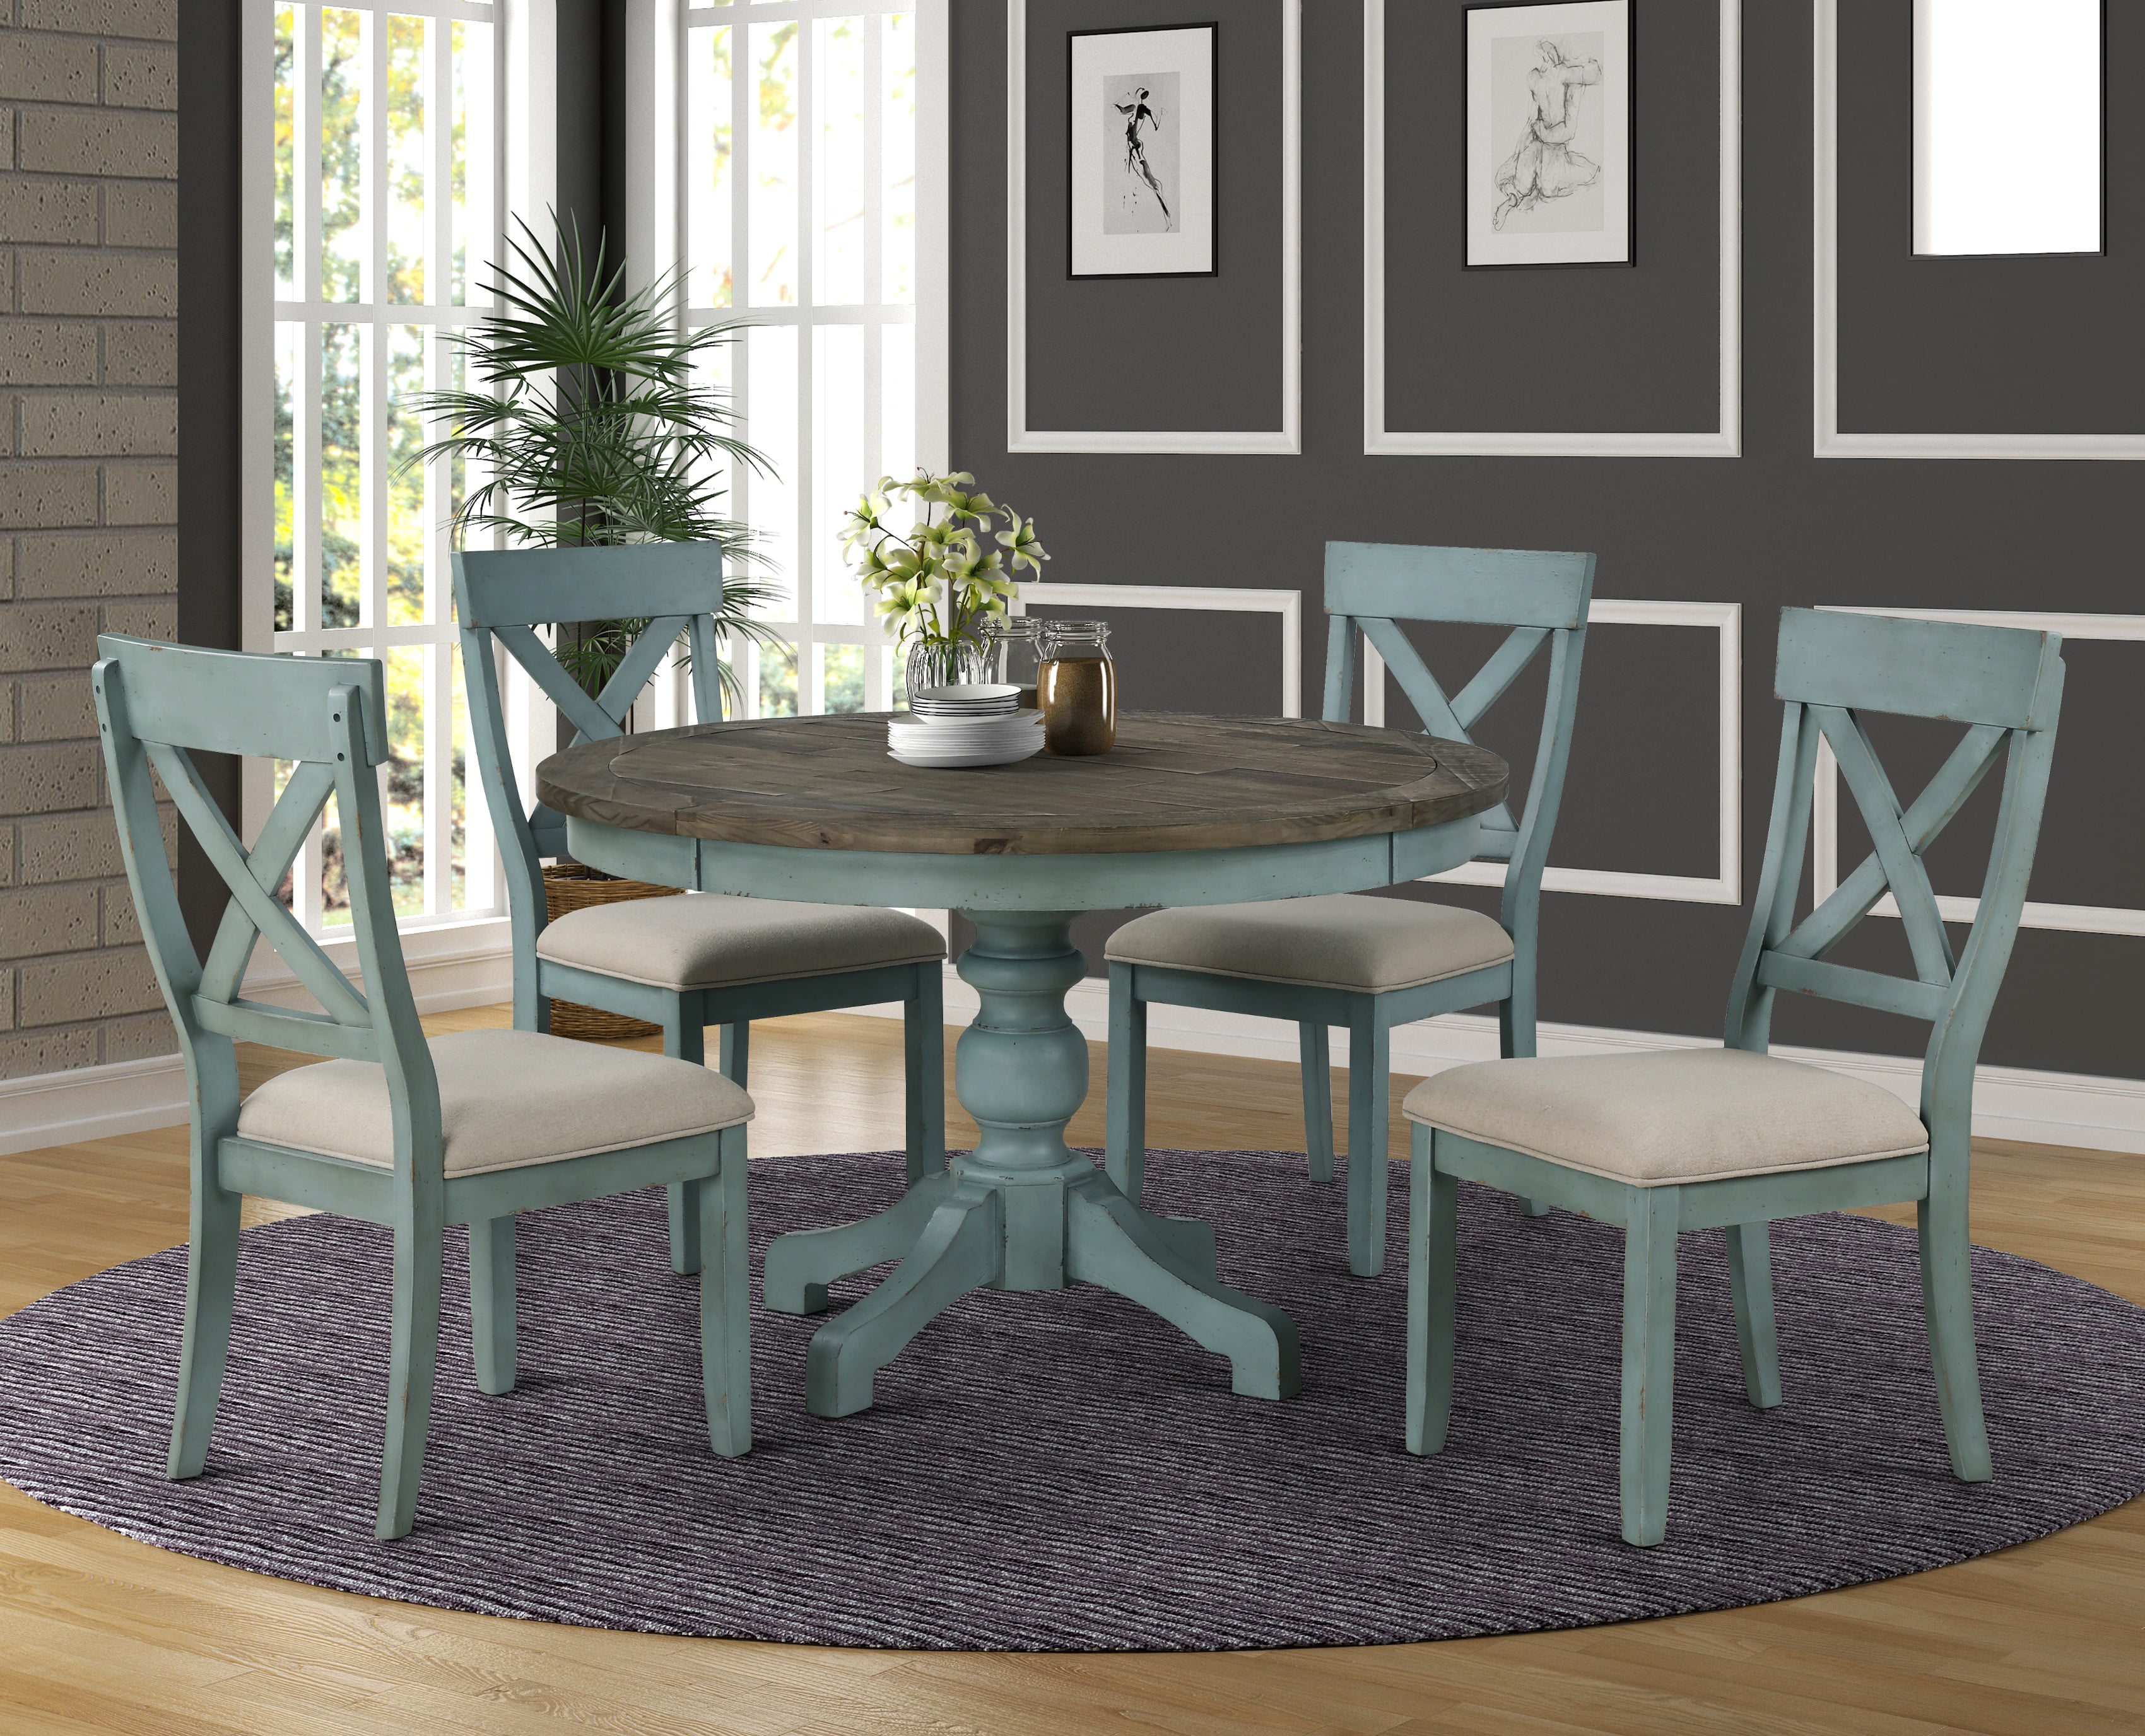 The Gray Barn Spring Mount 5 Piece Round Dining Table Set With Cross Back Chairs Walmart Com Walmart Com